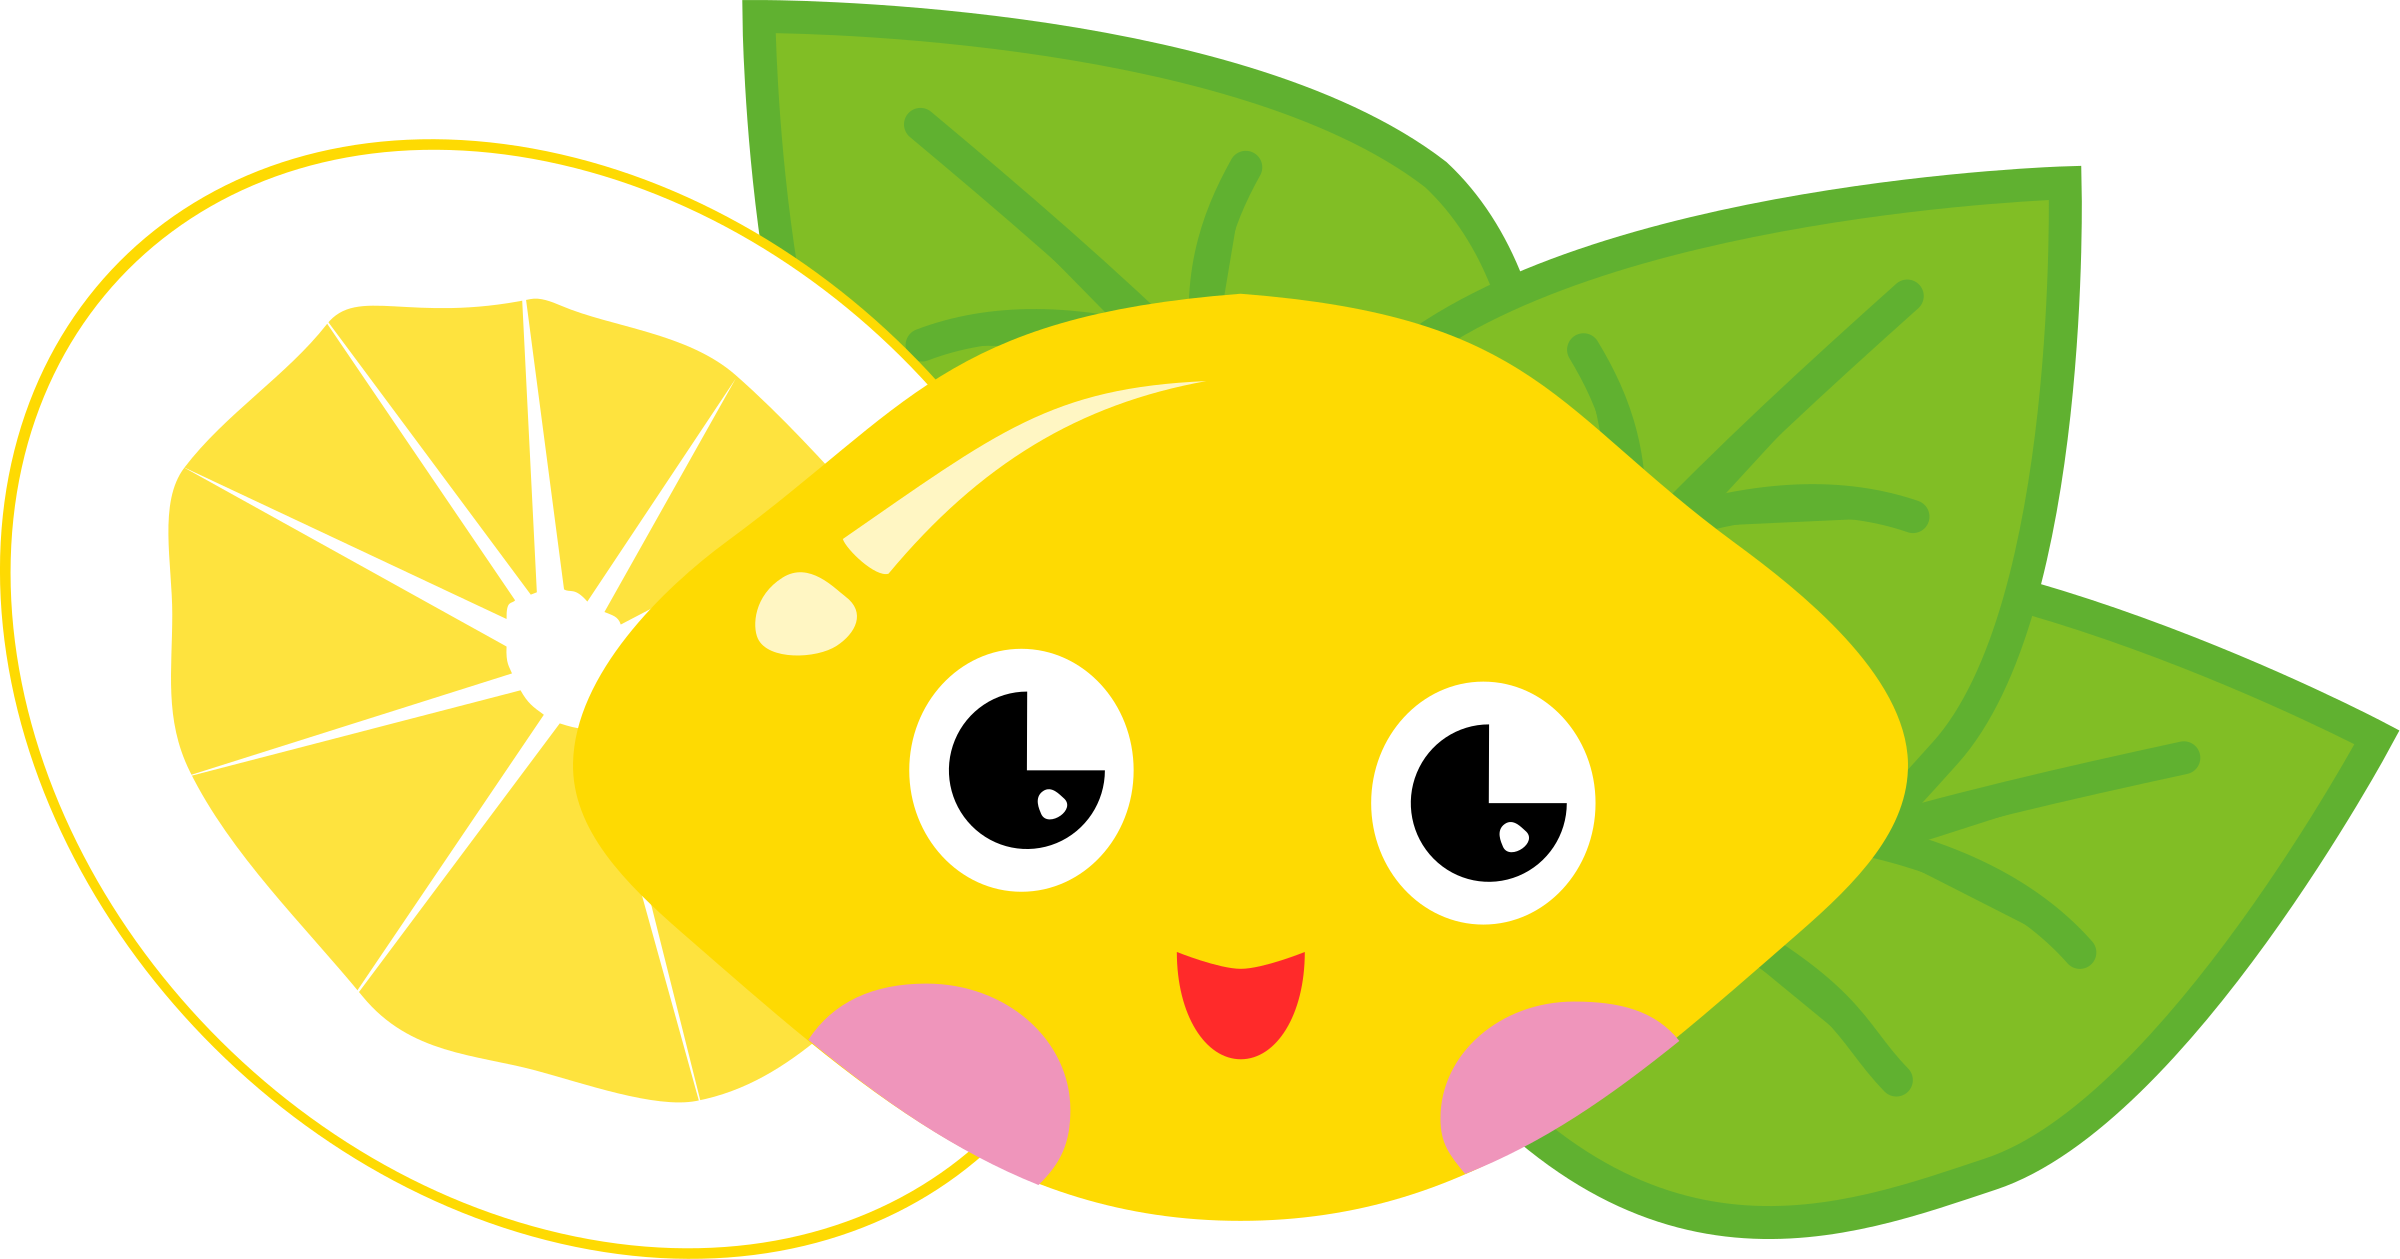 Leaf clipart face. Cartoon lemons group lemon